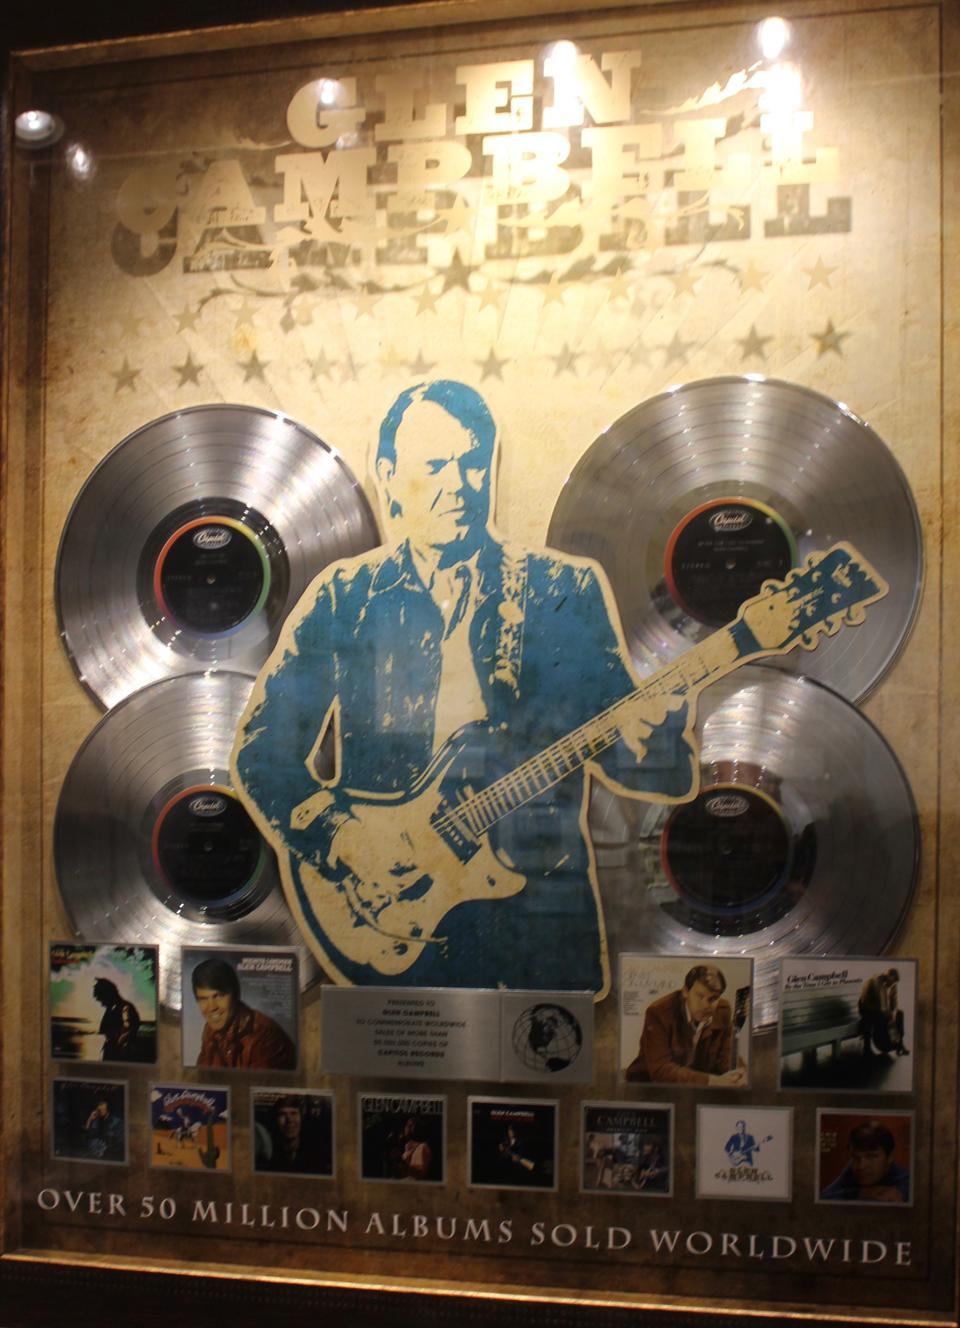 Glen Campbell sold more than 50 million albums worldwide during his career